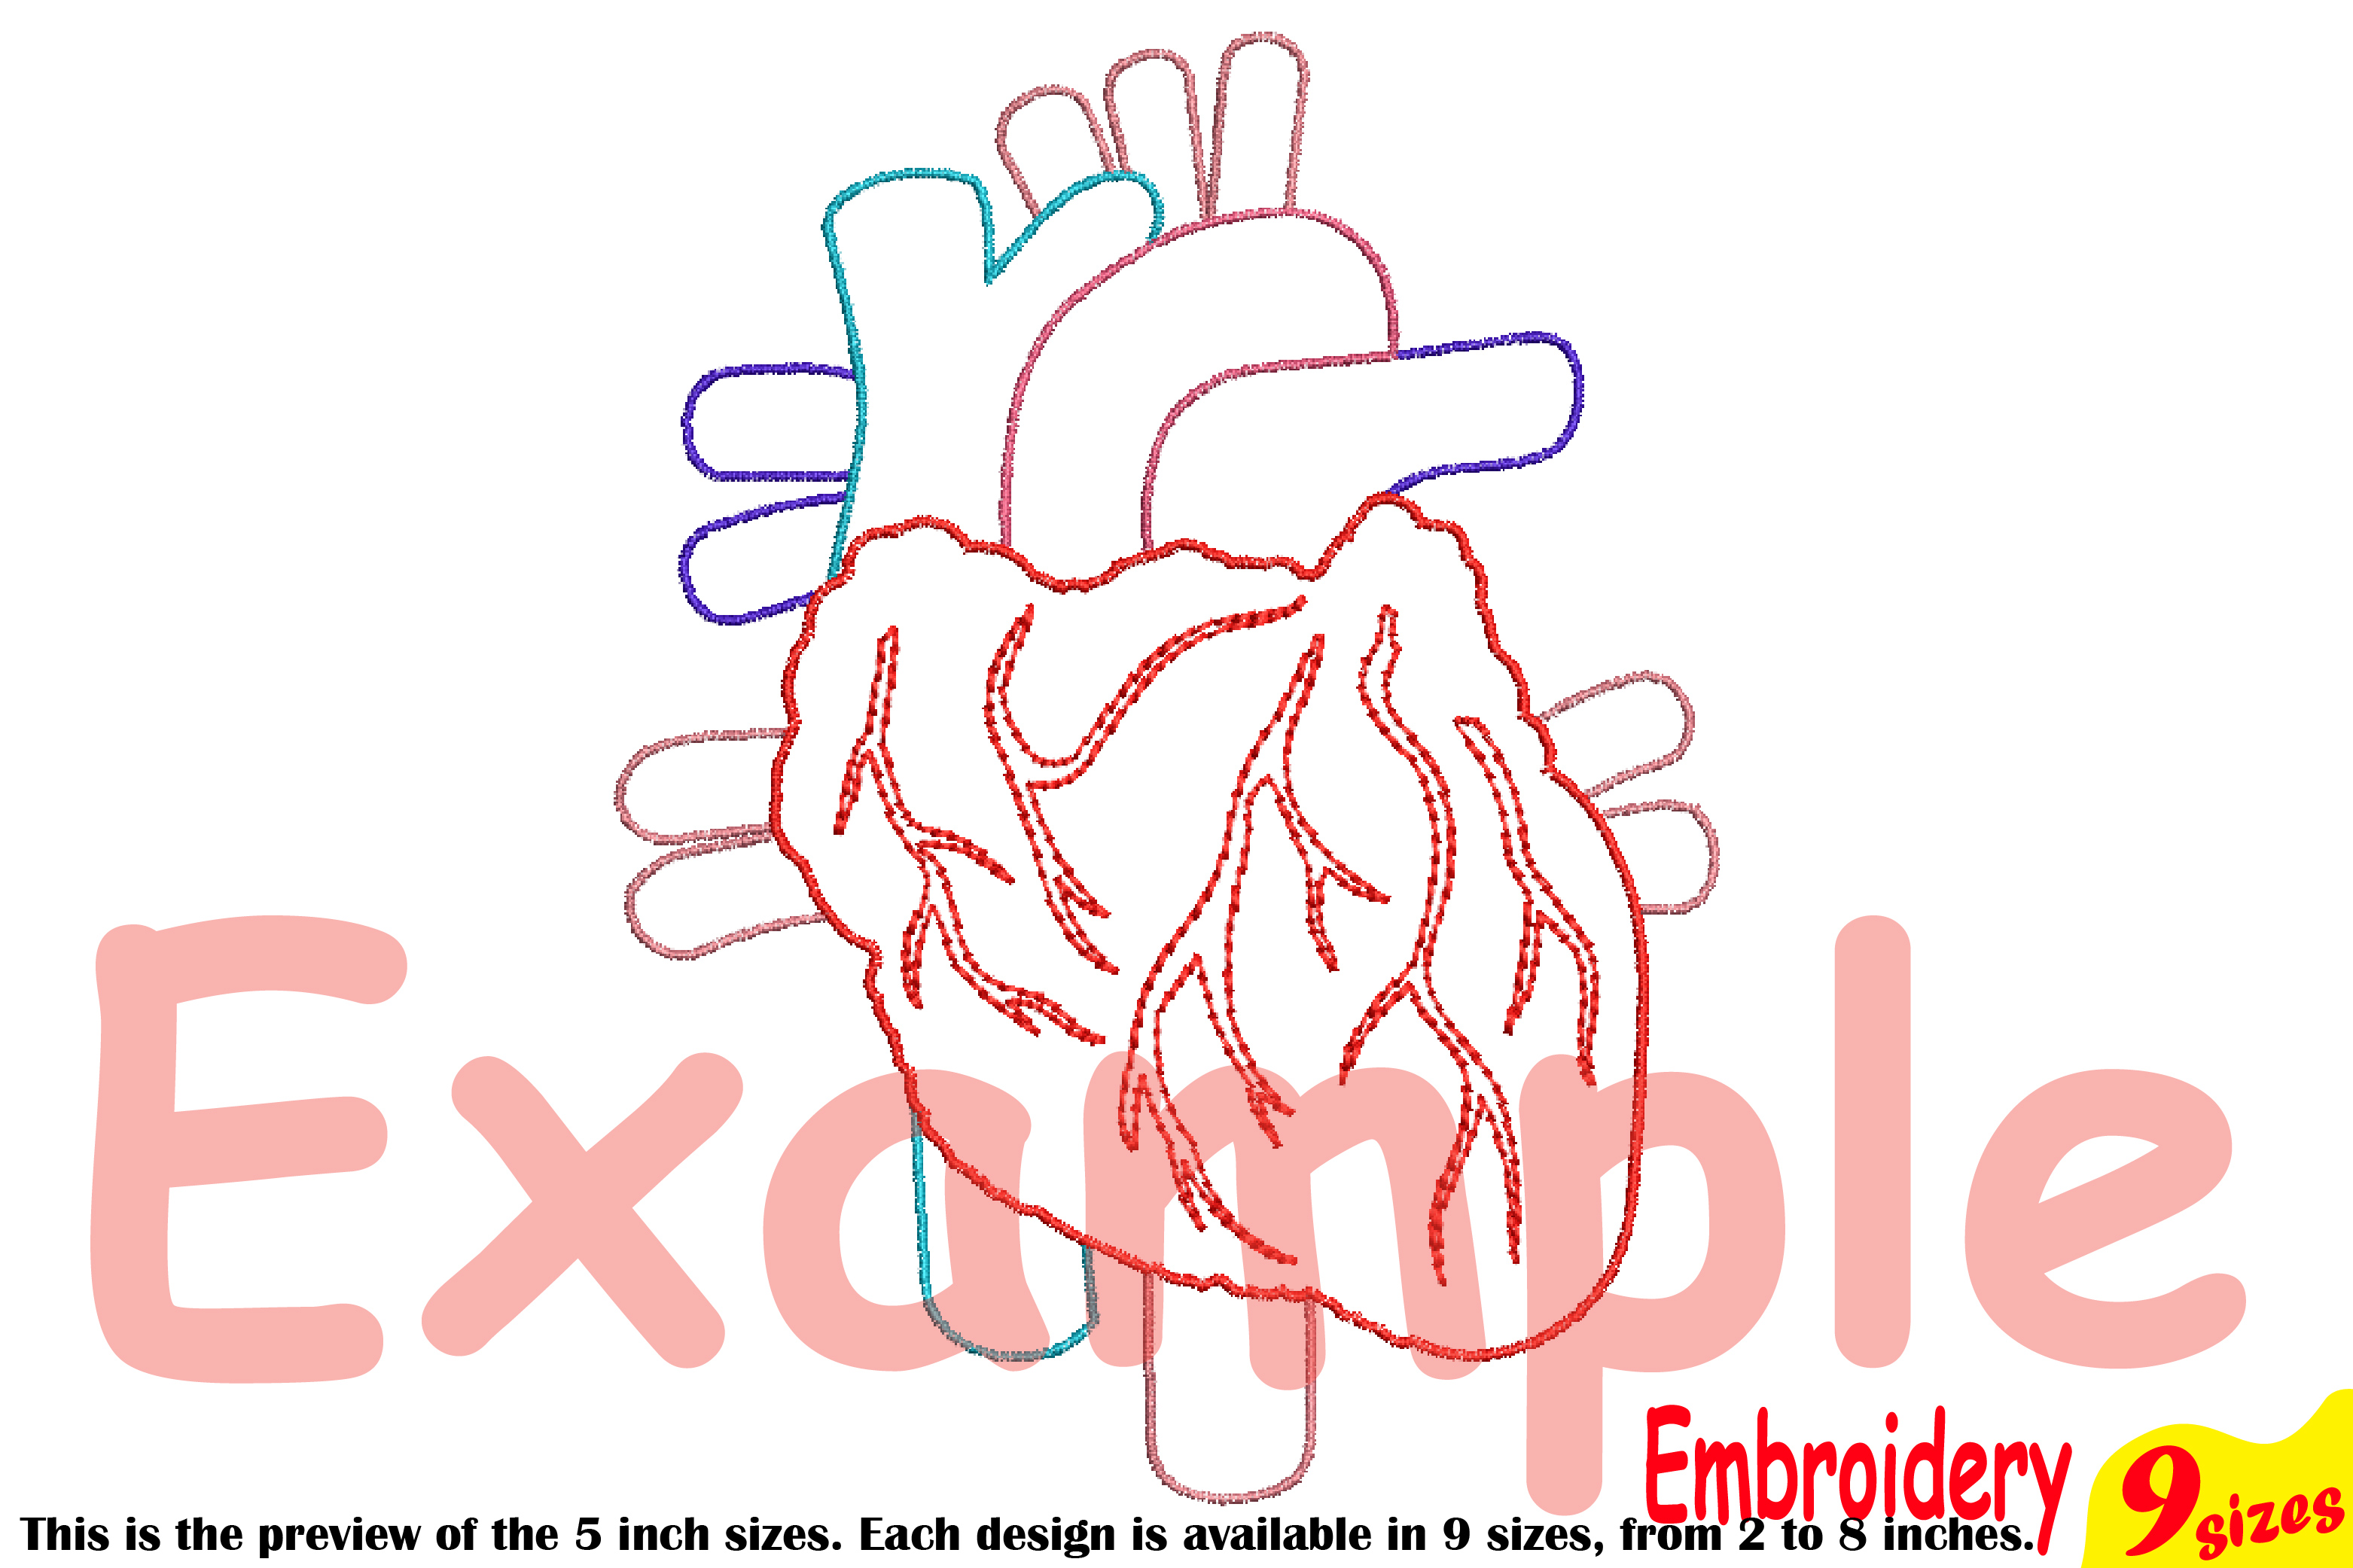 Heart Outline Embroidery Design Machine Instant Download digital file science school hospital biology Medic Organs Anatomy 202b example image 3